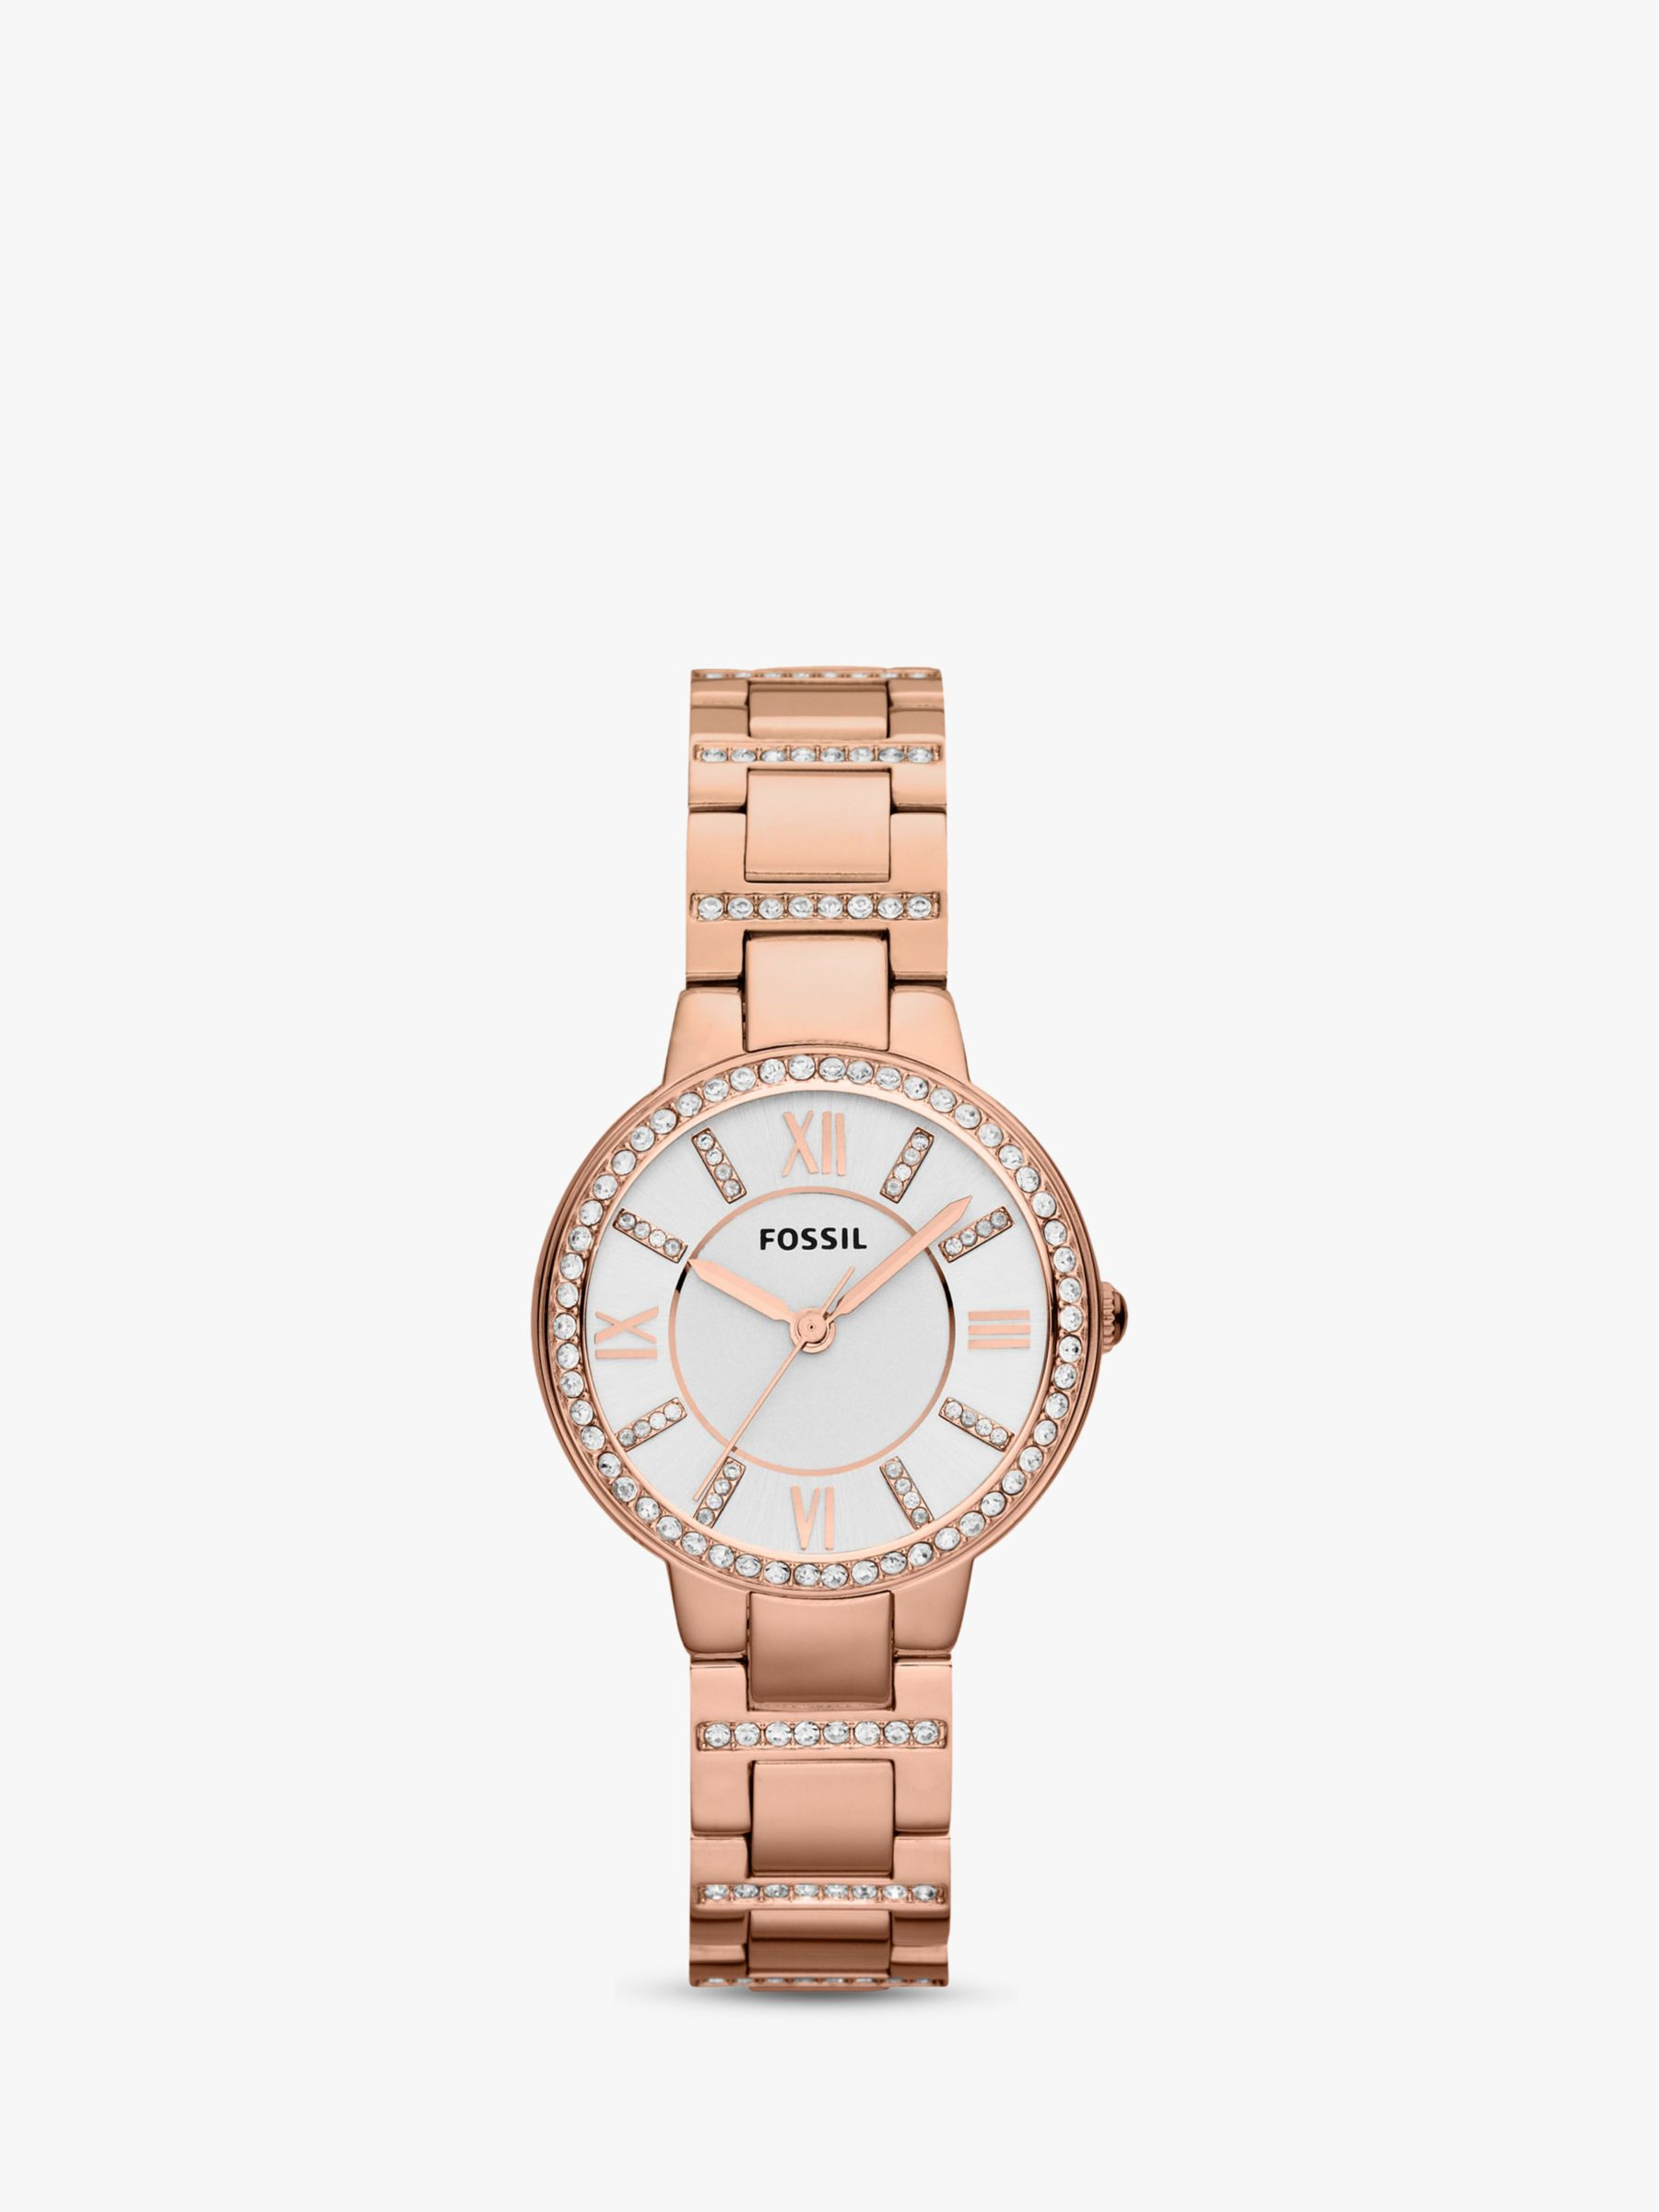 Fossil Fossil ES3284 Women's Virginia Stainless Steel Bracelet Strap Watch, Rose Gold/White